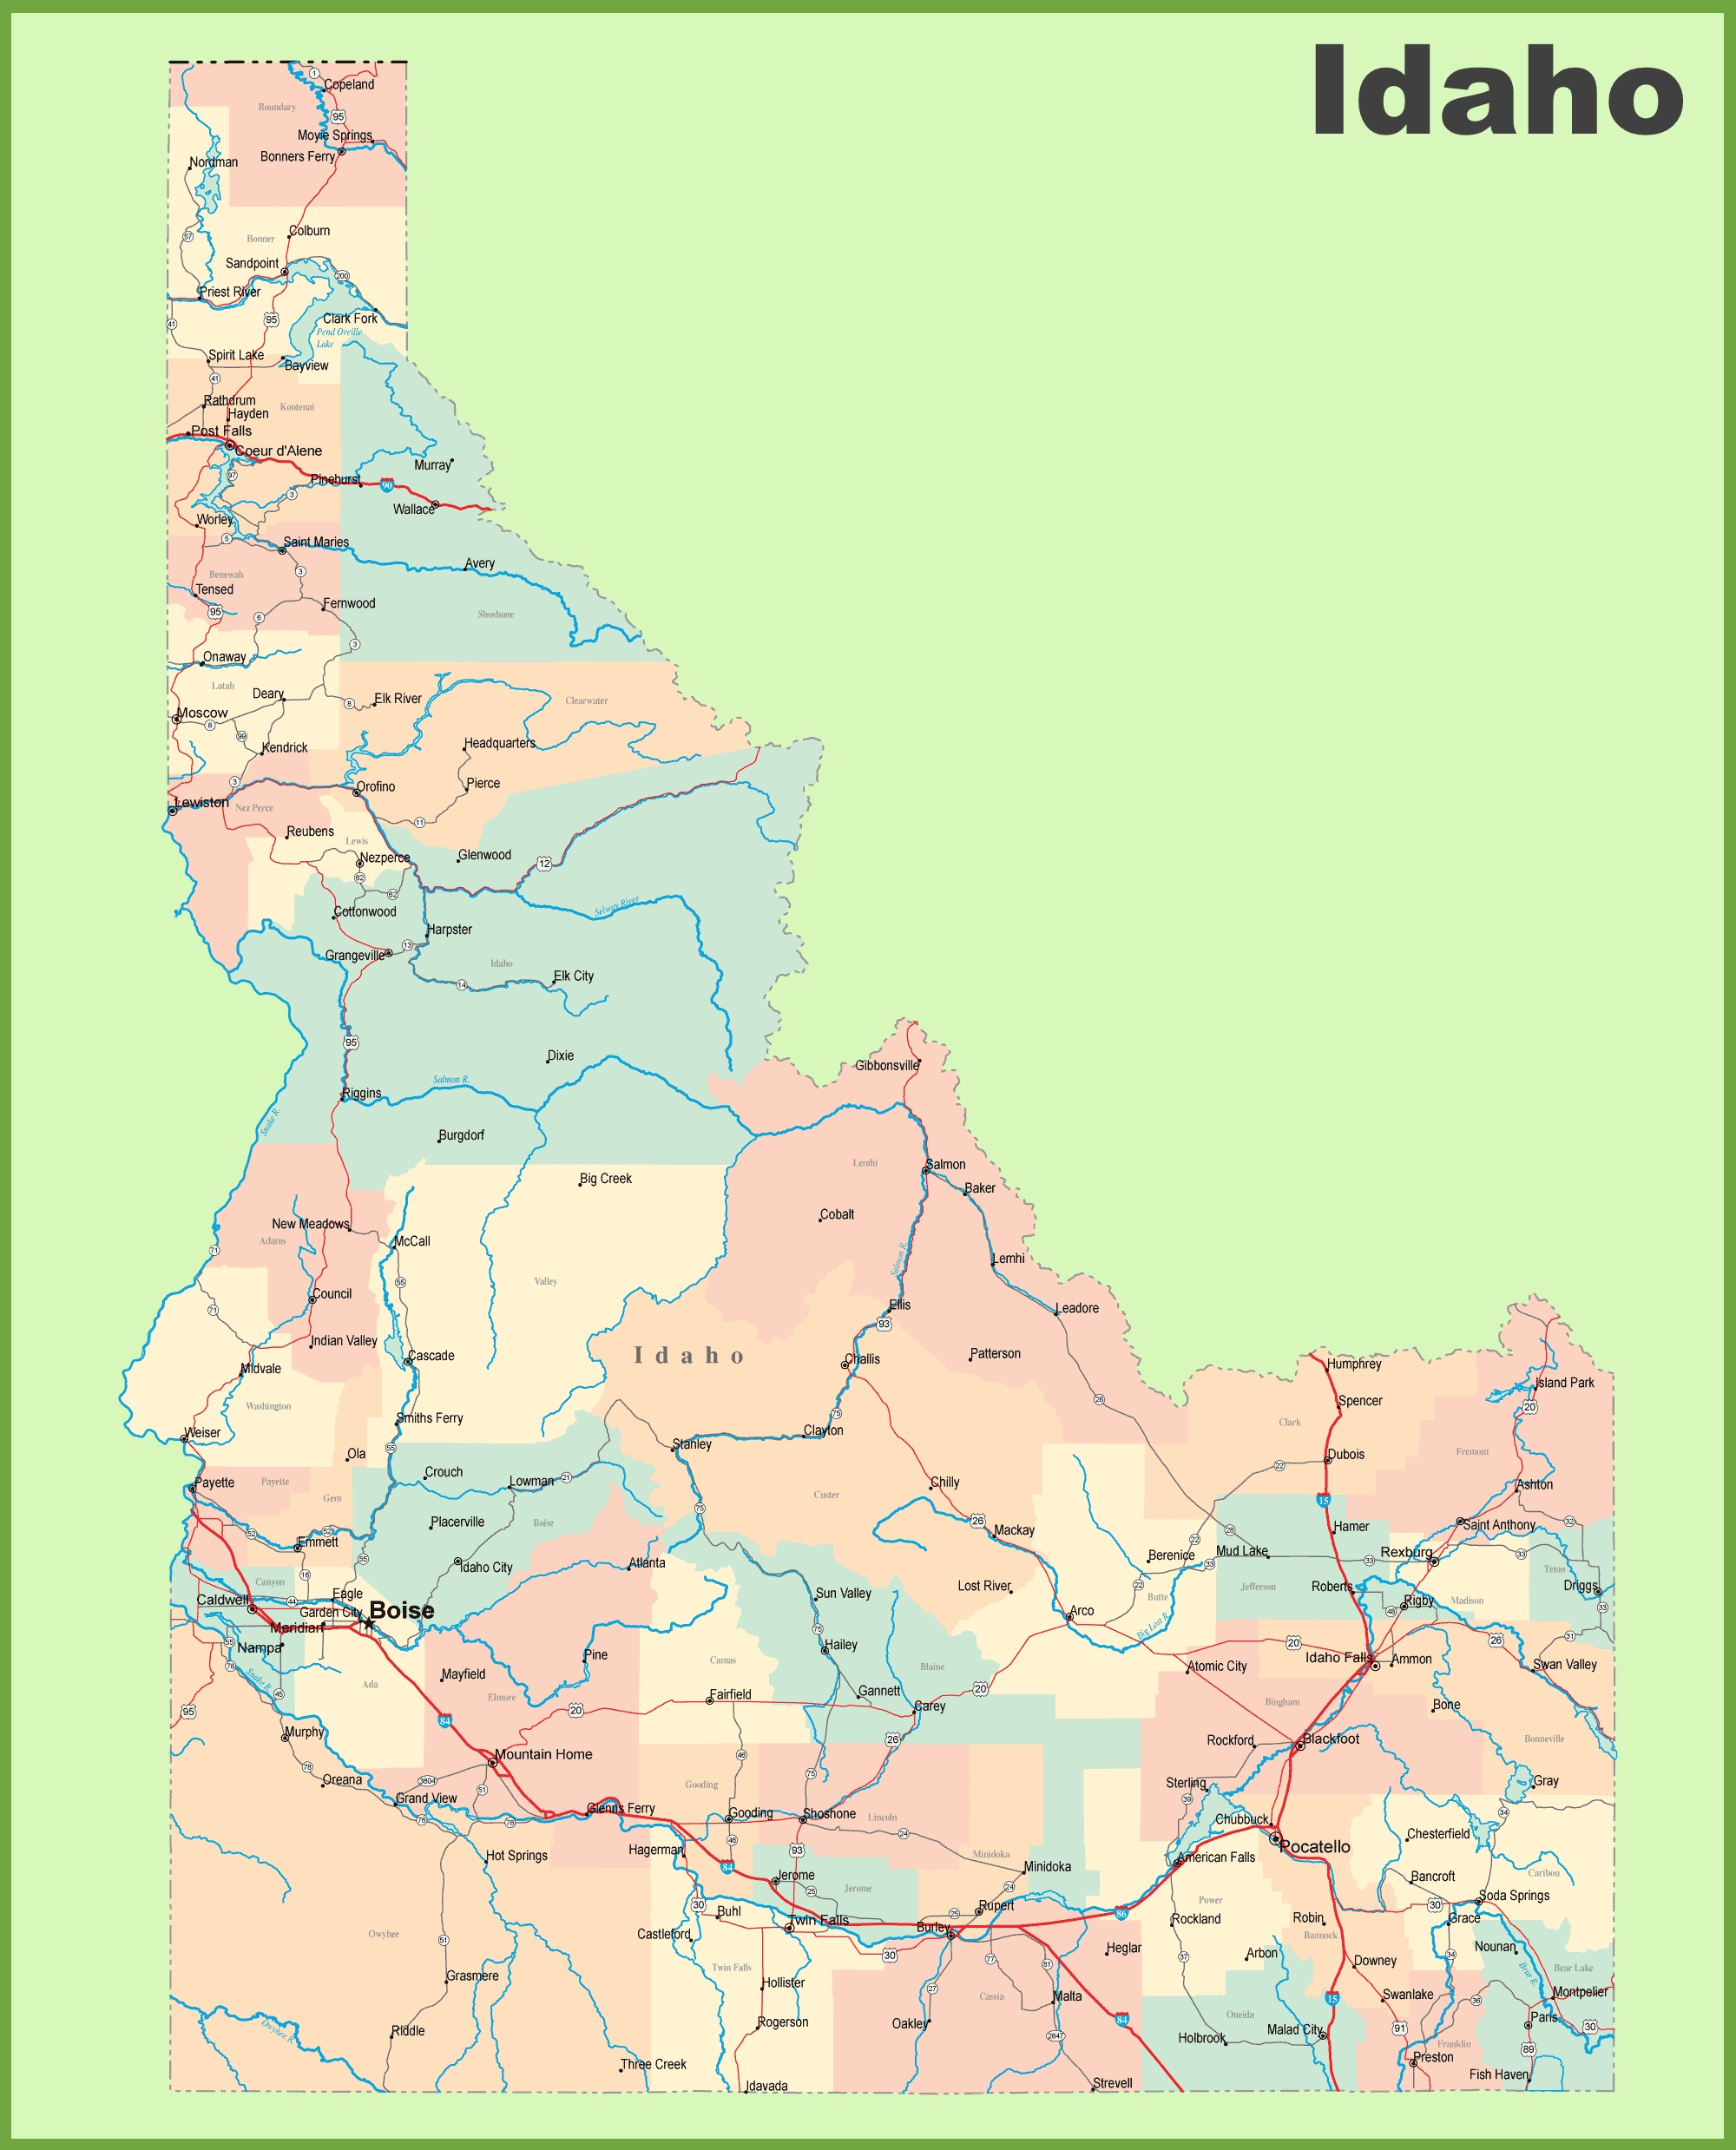 Road Map Of Idaho With Cities And Towns - Map of idaho with cities